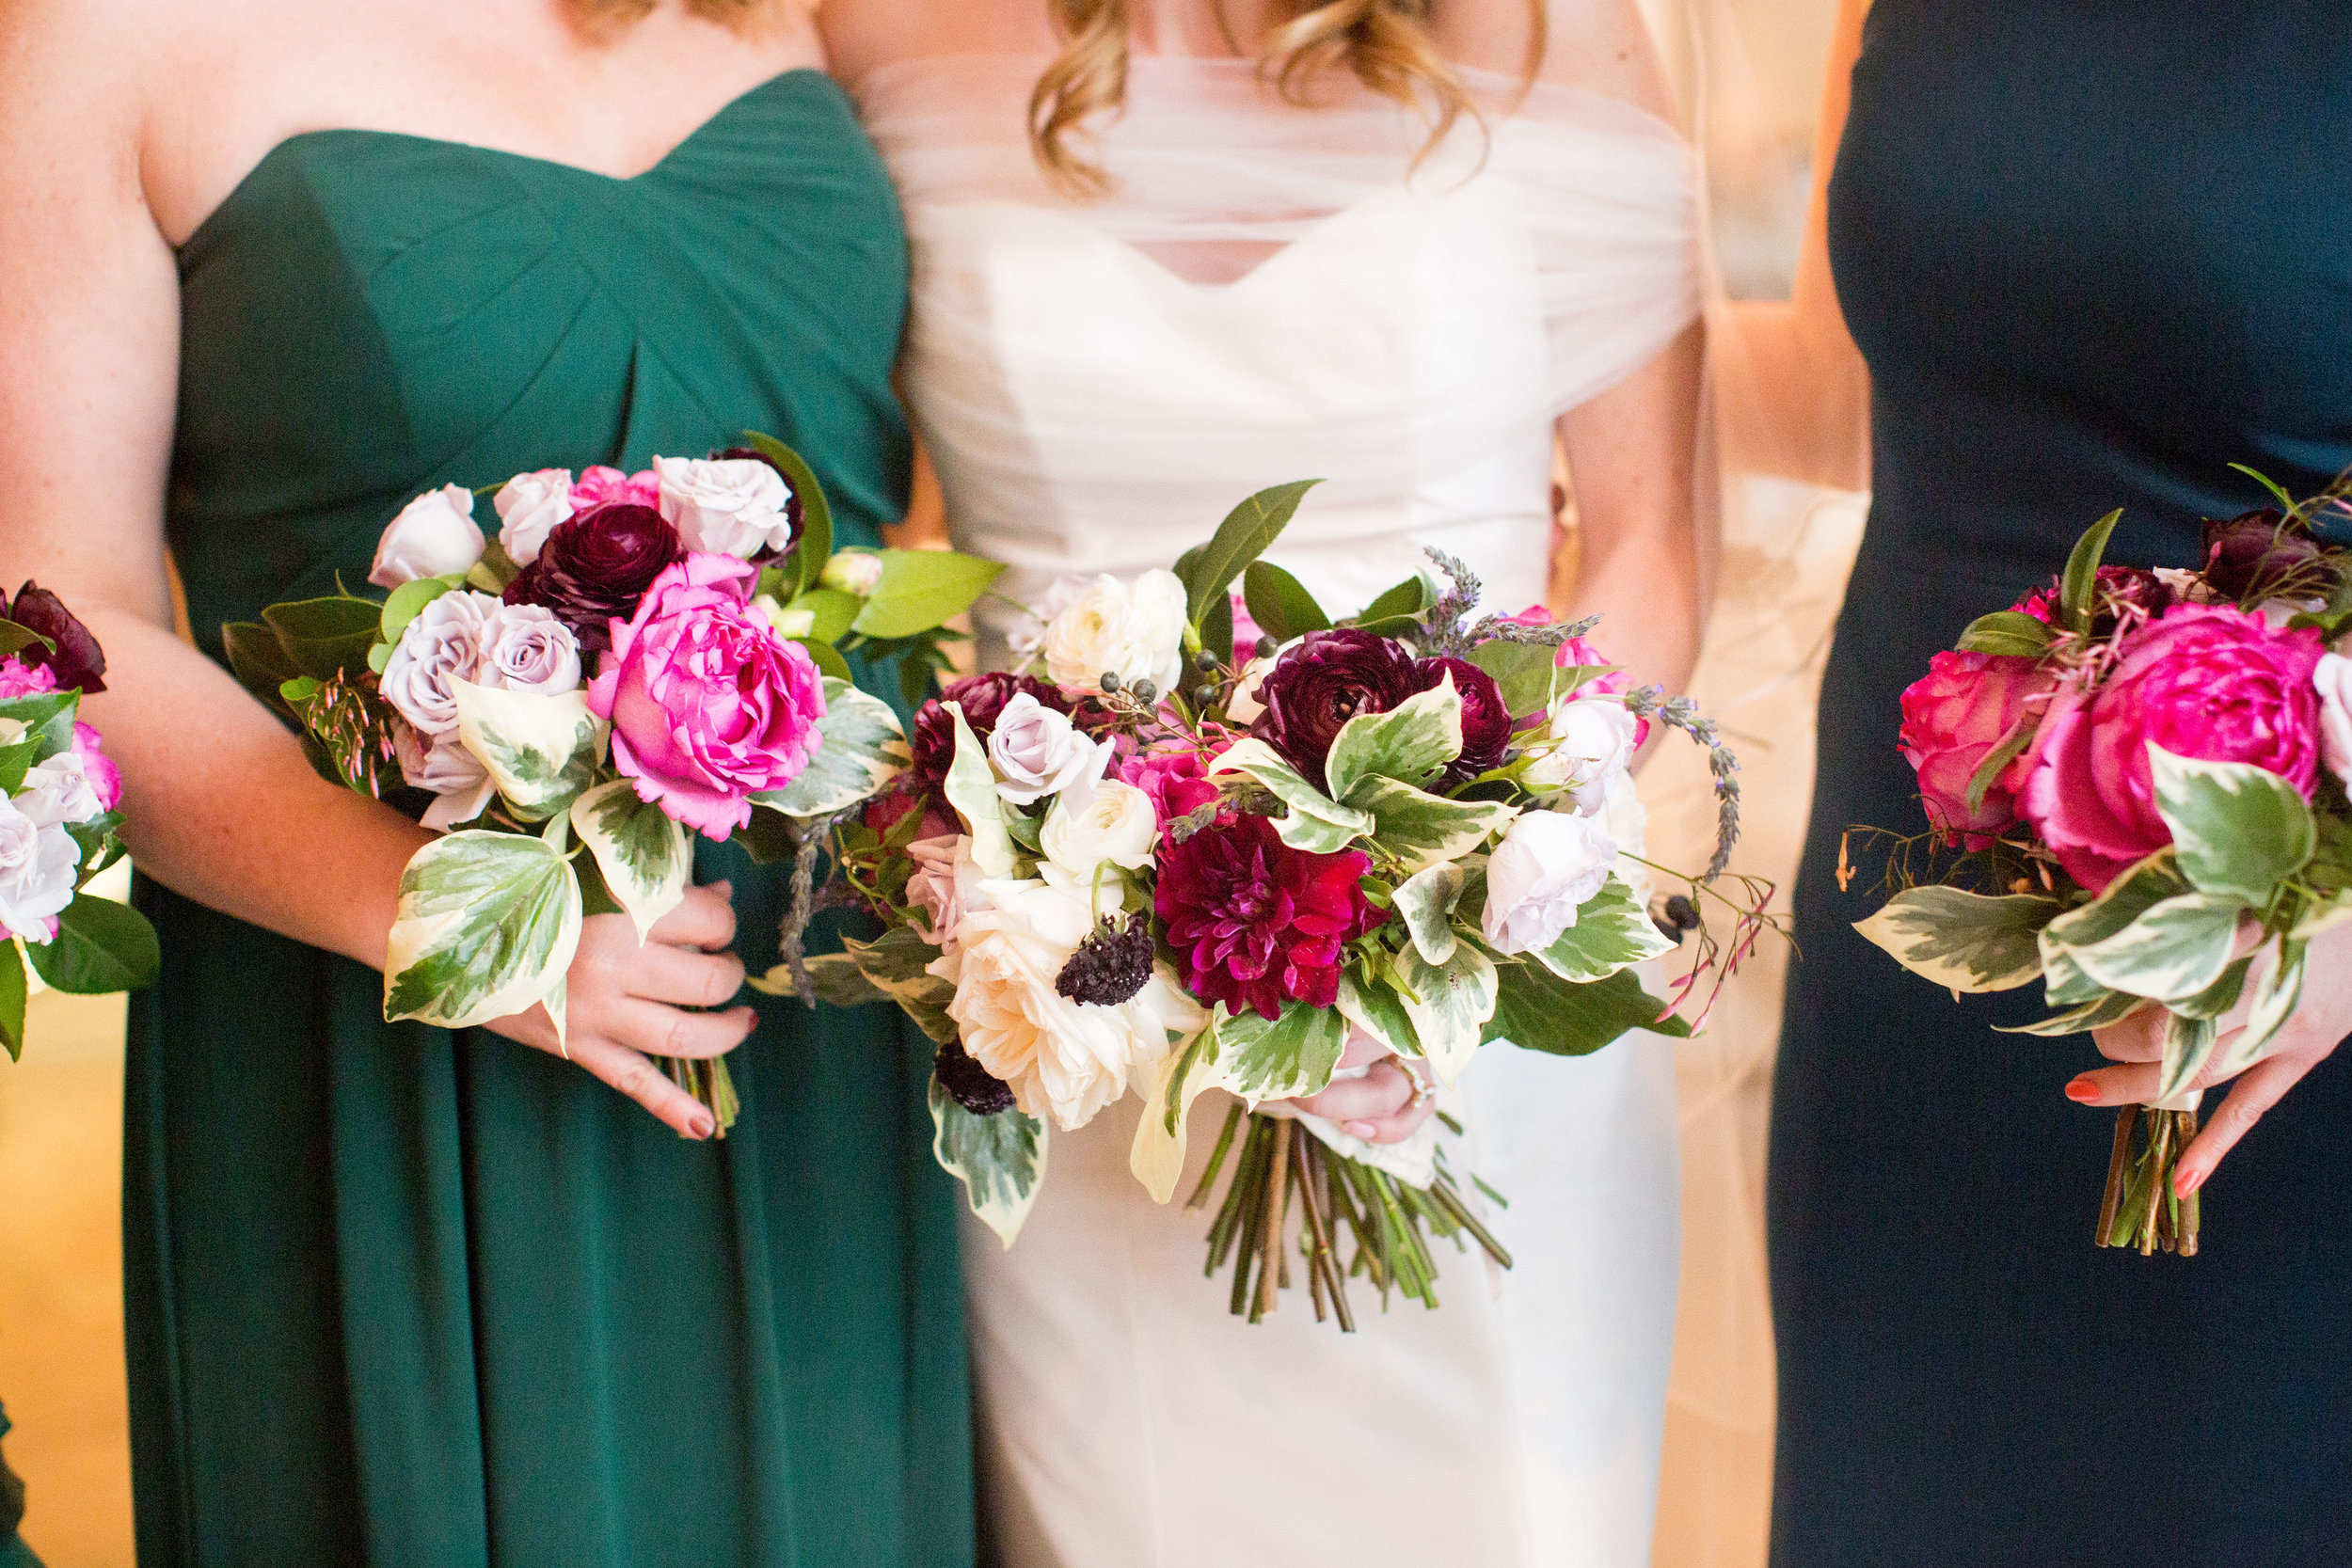 A lovely, Chicago bride and her sweet bridesmaids at Artifact Events for this April wedding.  Flowers by Fleur Inc, photo by Olivia Leigh Weddings, and planning by LK Events.